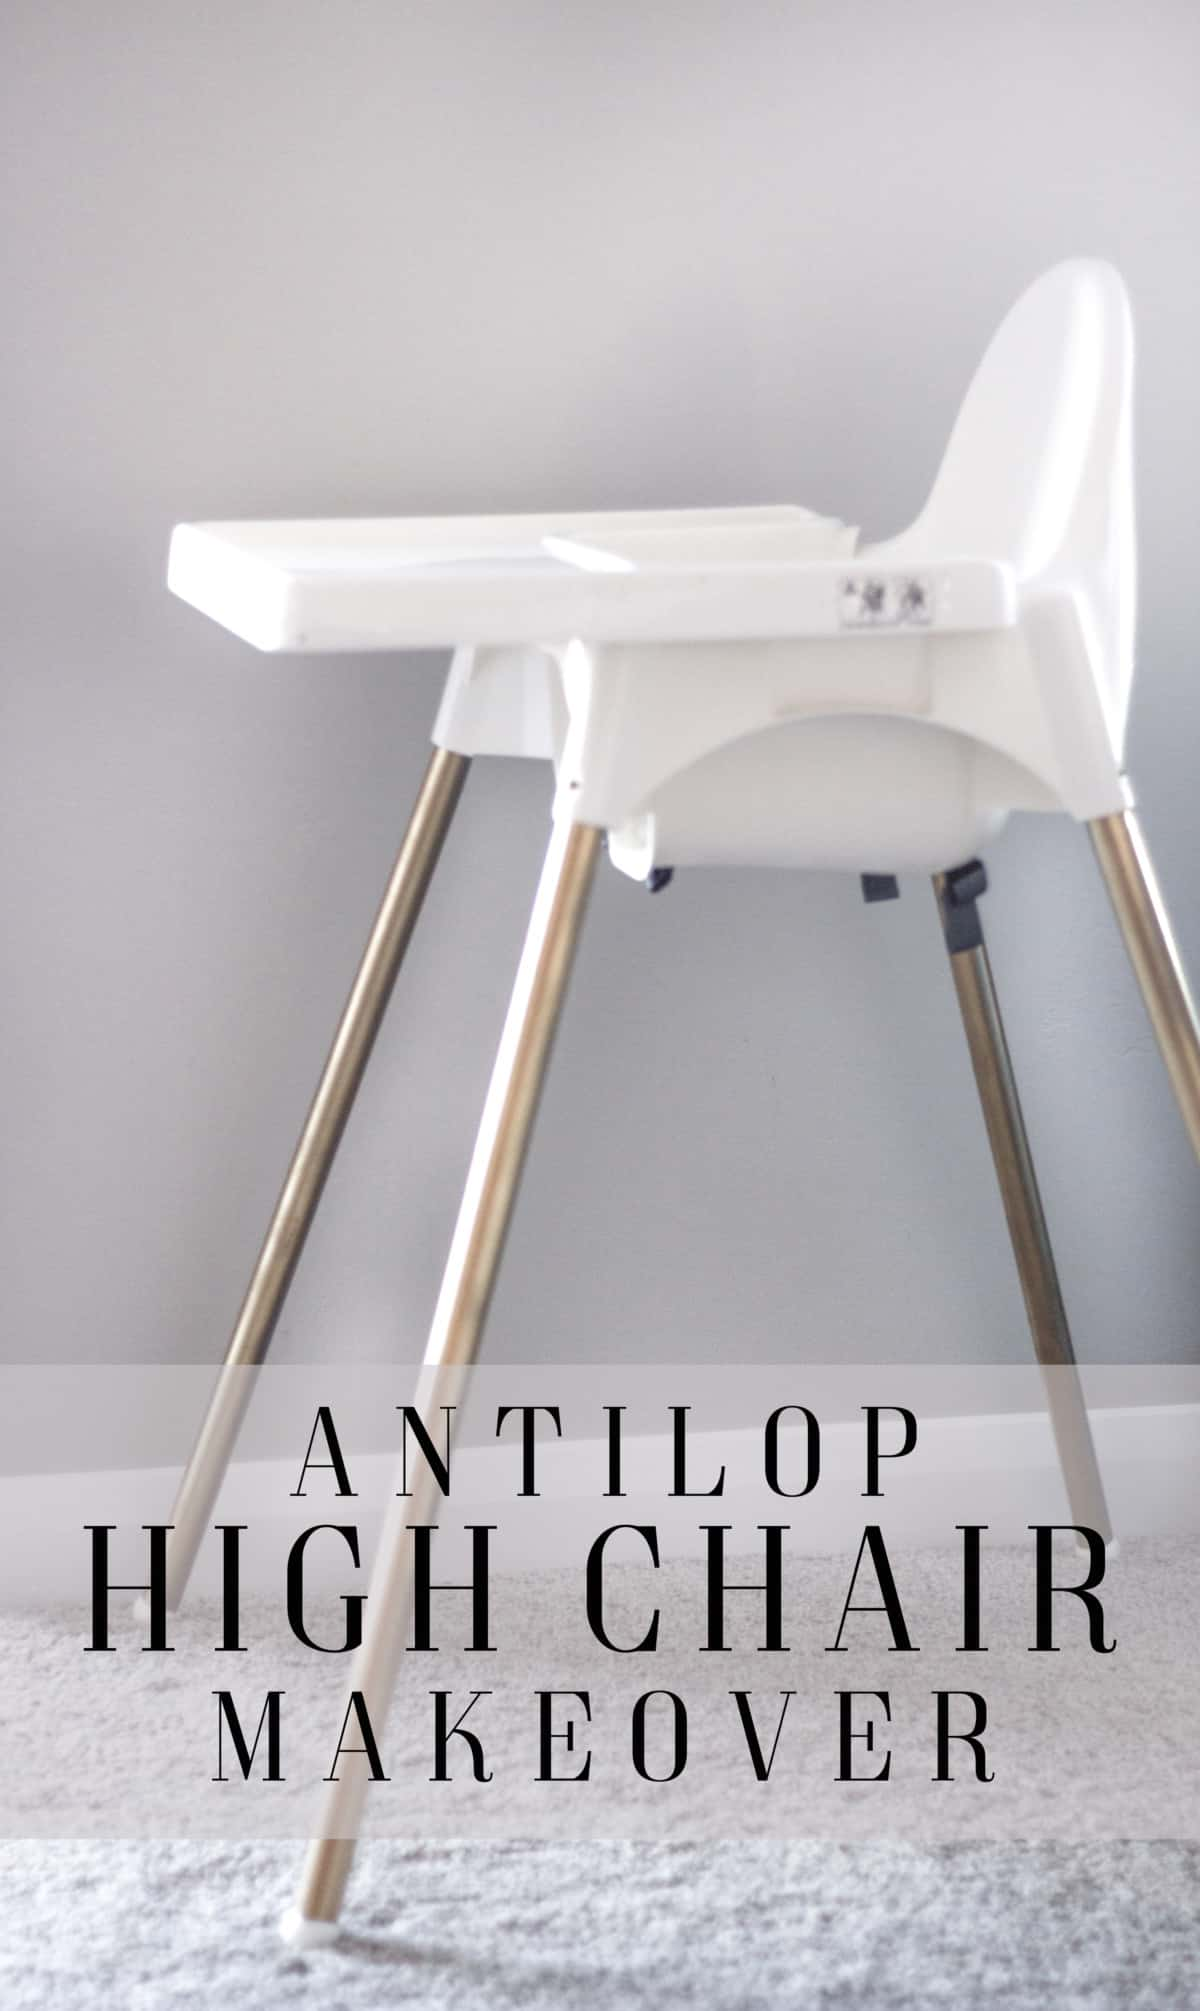 antilop high chair patio table and chairs clearance ikea makeover practical pretty